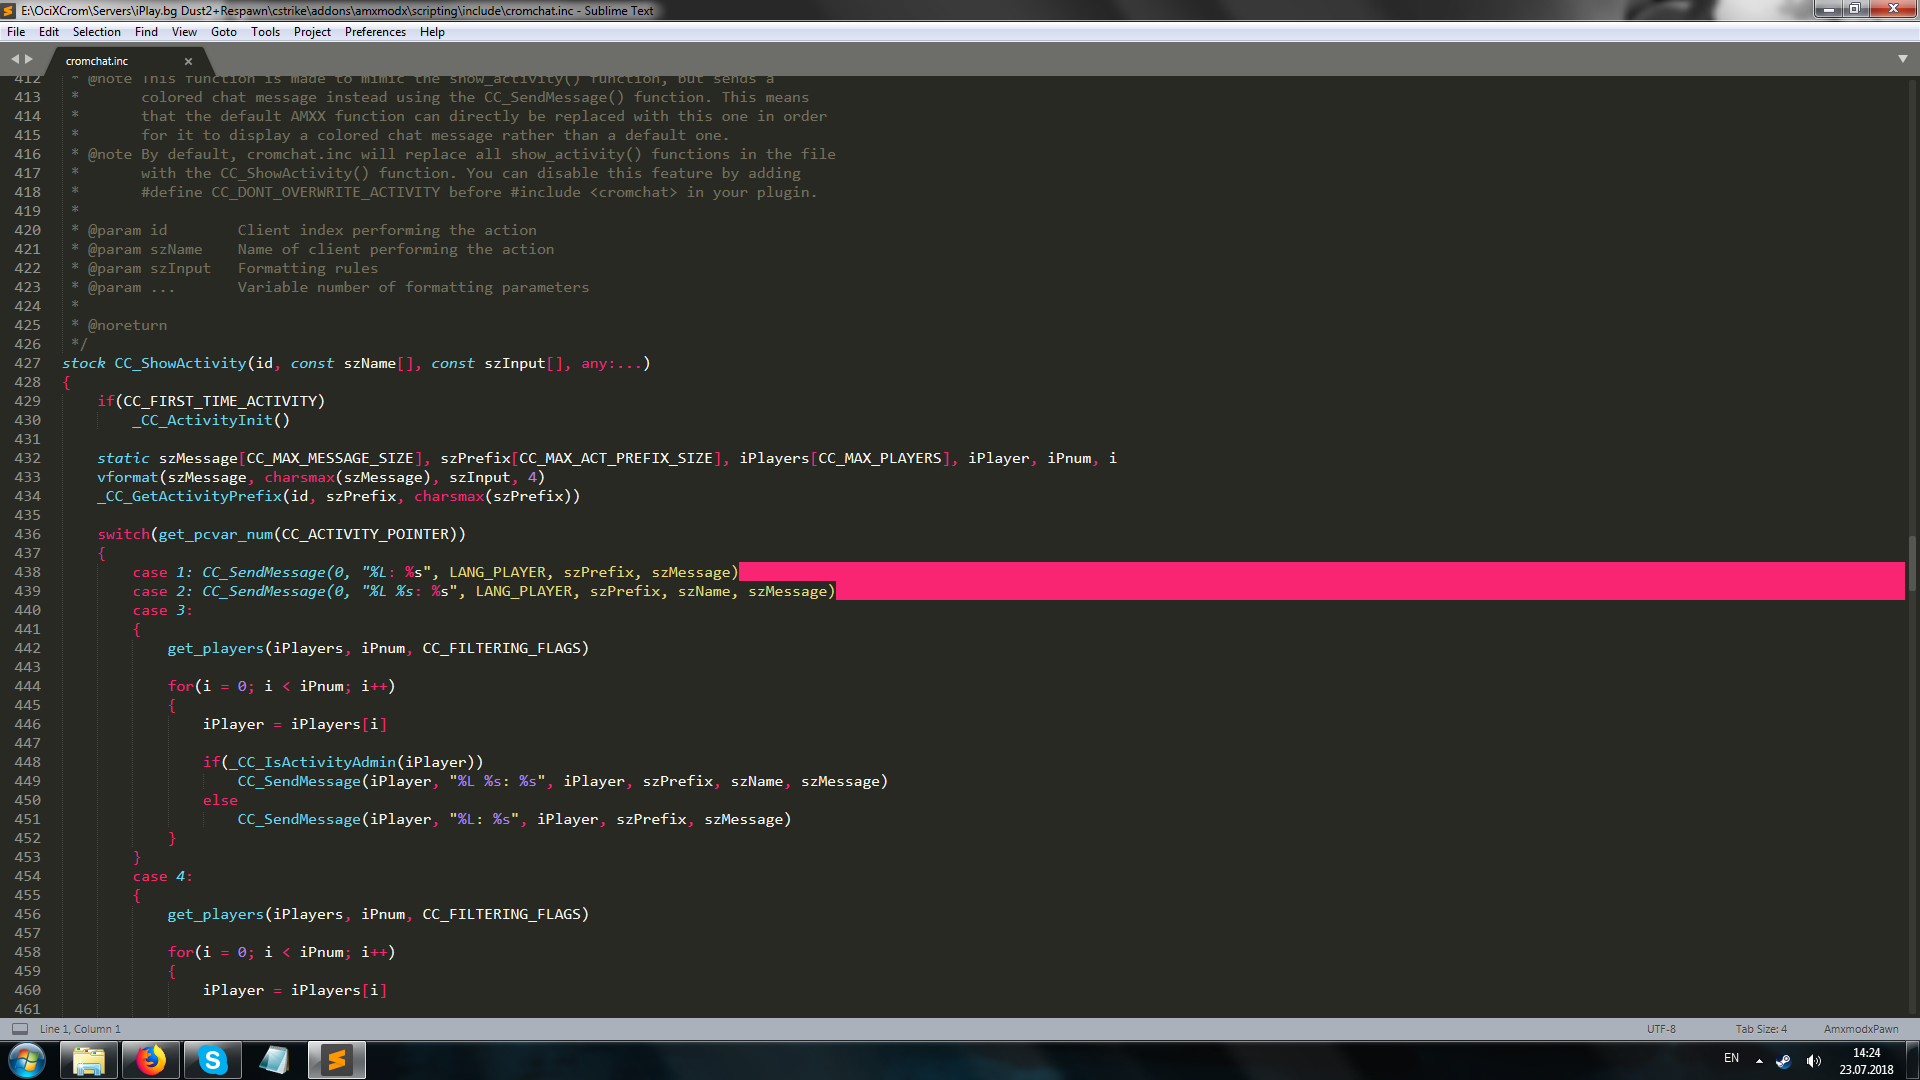 TUT] Compiling AMXX plugins with Sublime Text - Page 10